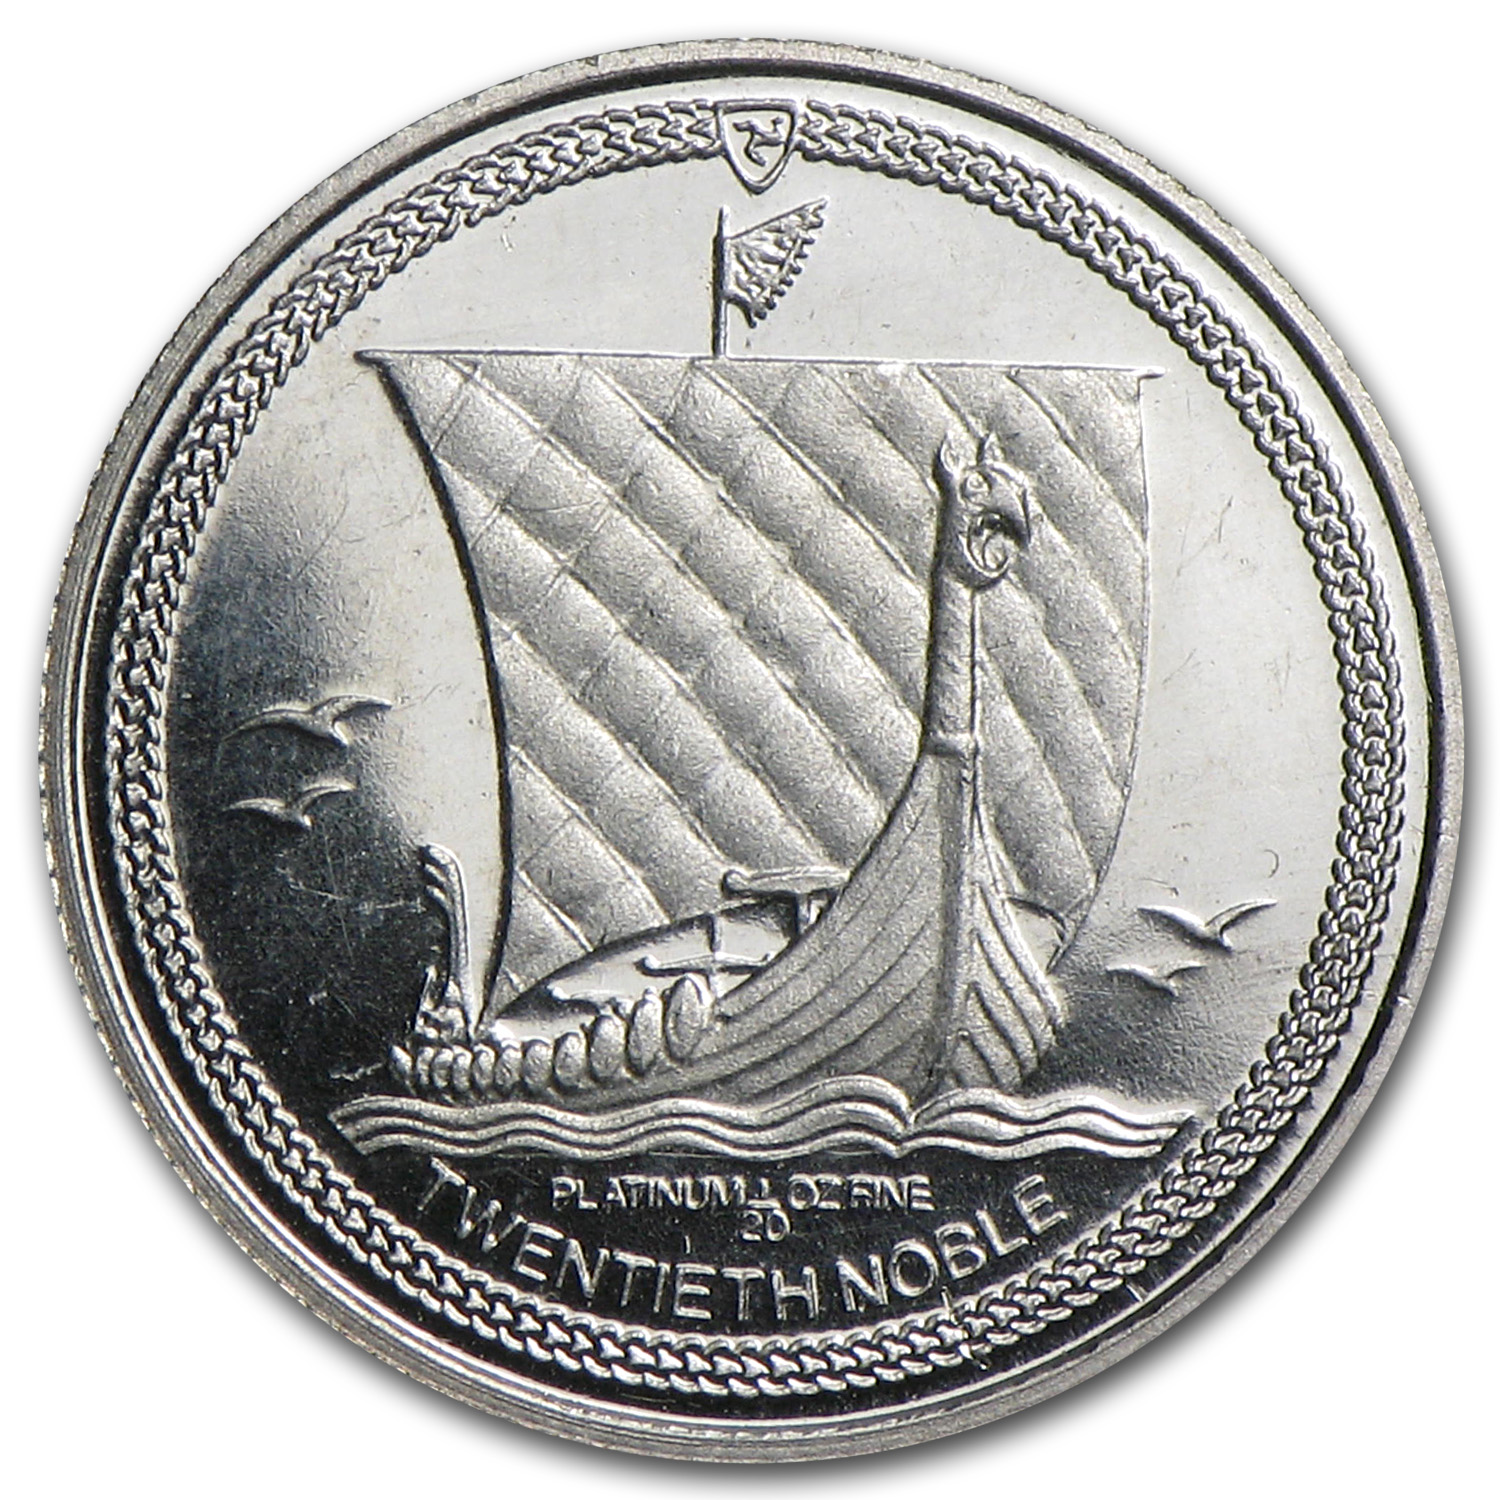 1/20 oz Isle of Man Platinum Noble (Proof)